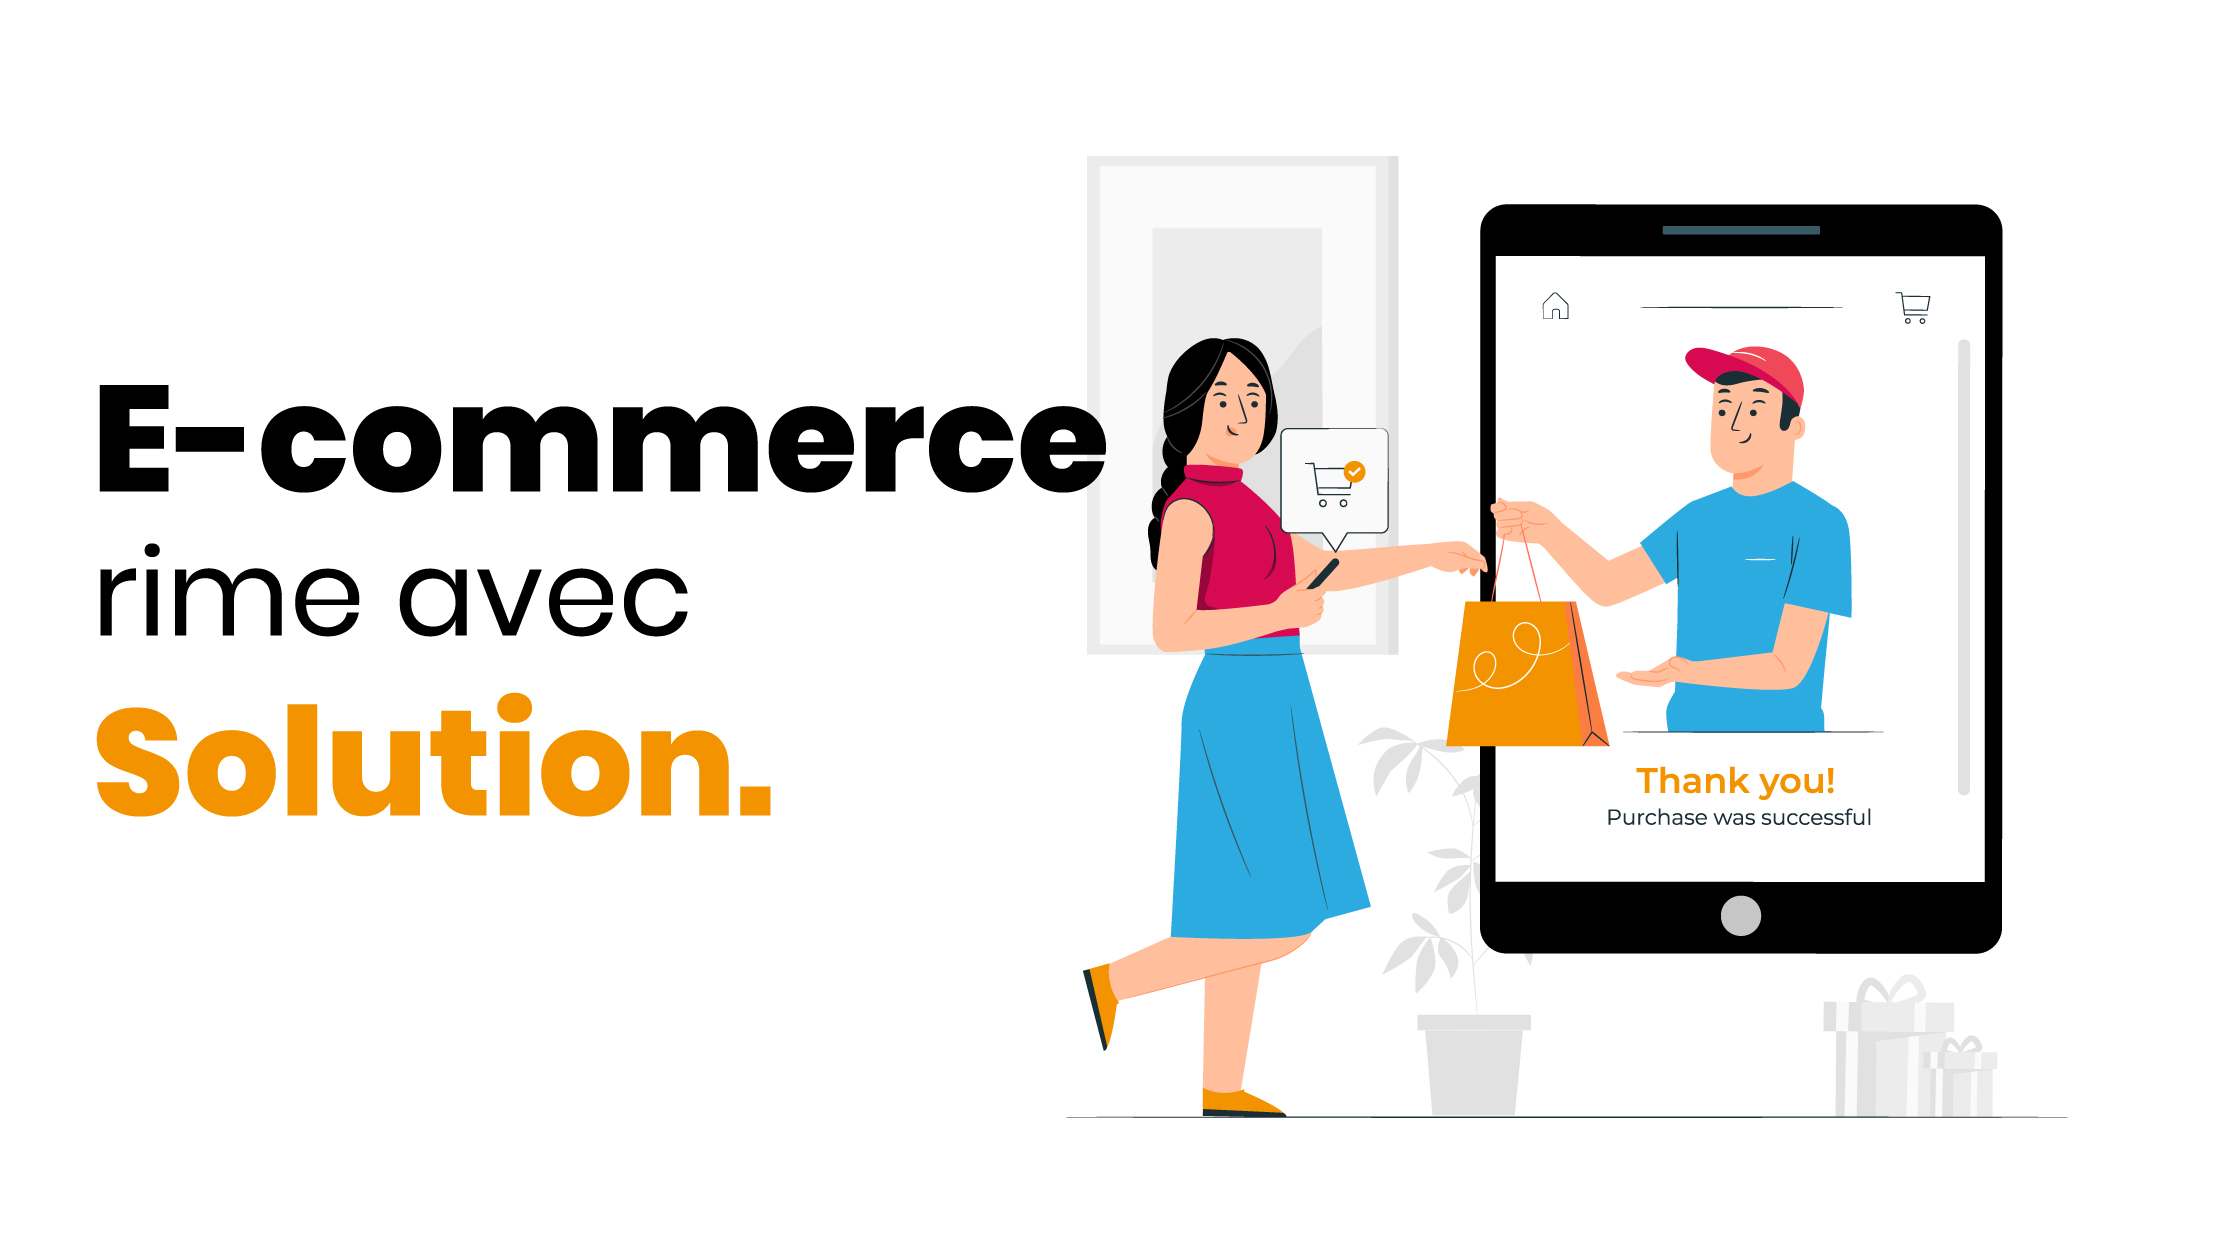 Solution_ecommerce_covid